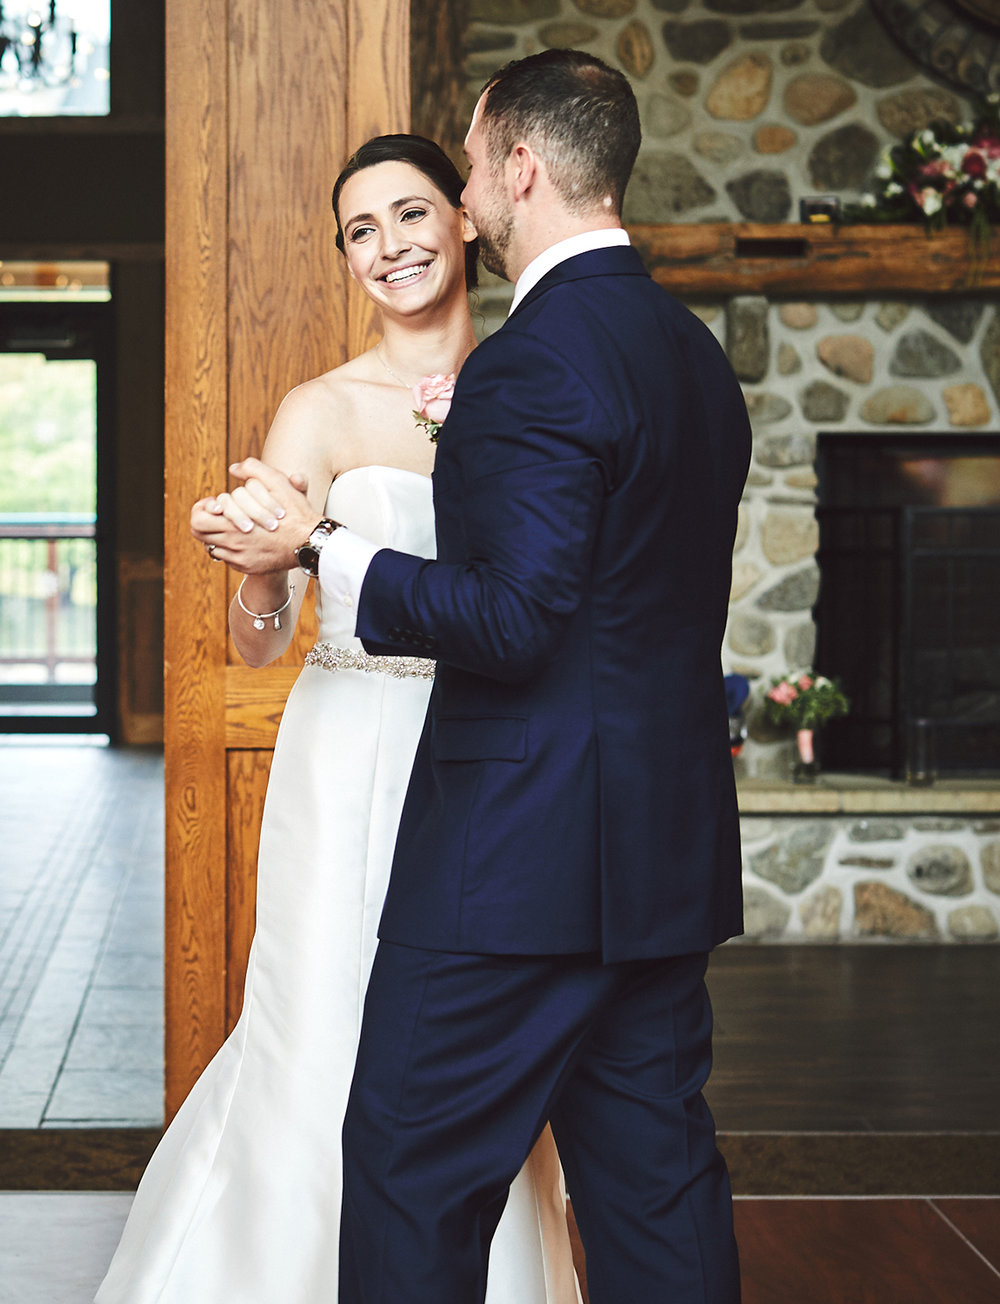 180714_HolidayValleyLodgeWeddingPhotography_By_BriJohnsonWeddings_0136.jpg